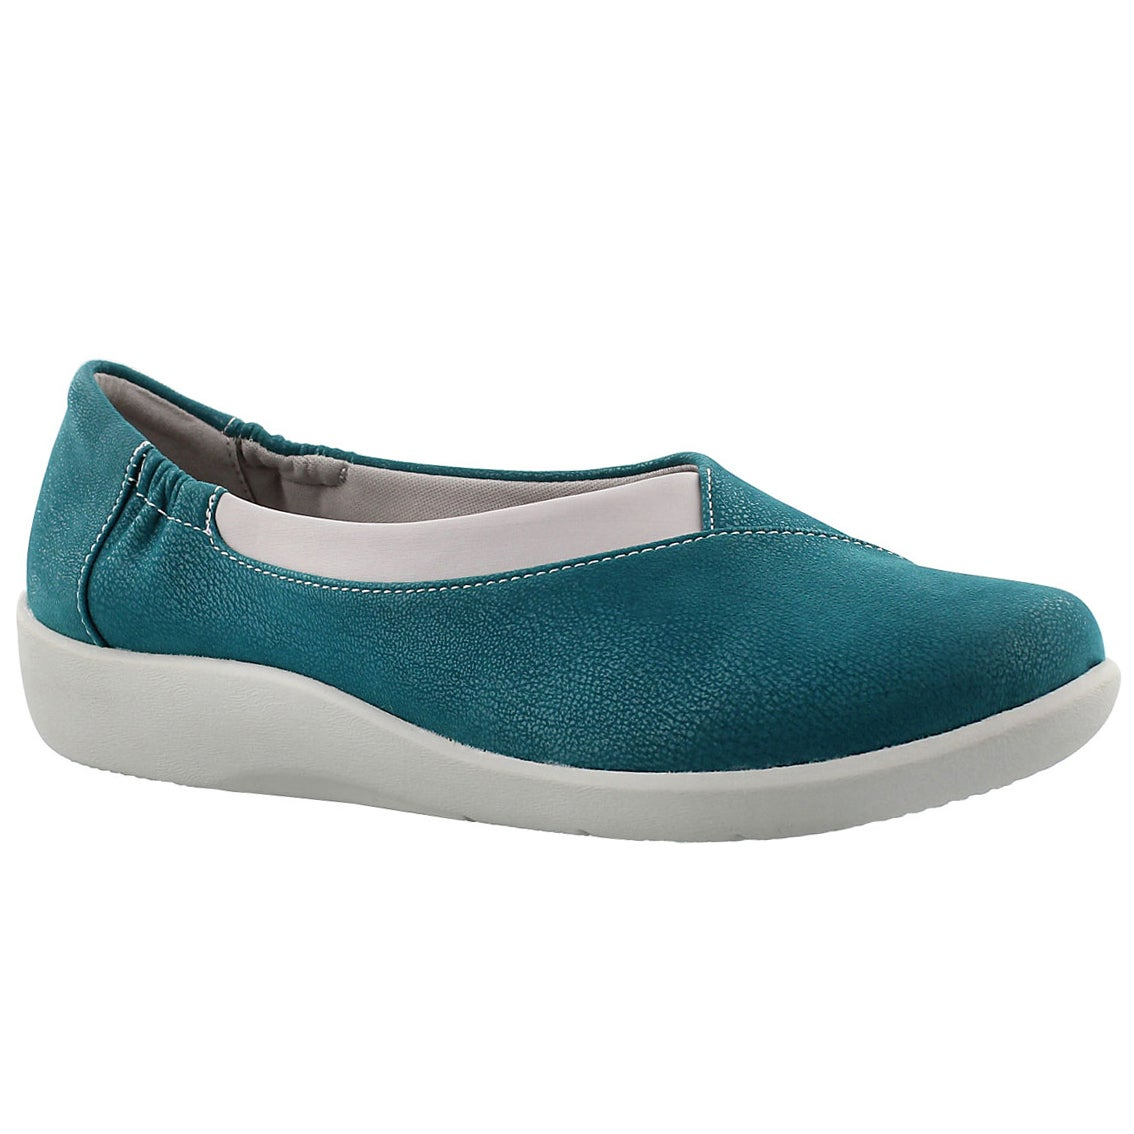 Lds Sillian Jetay teal casual slip on